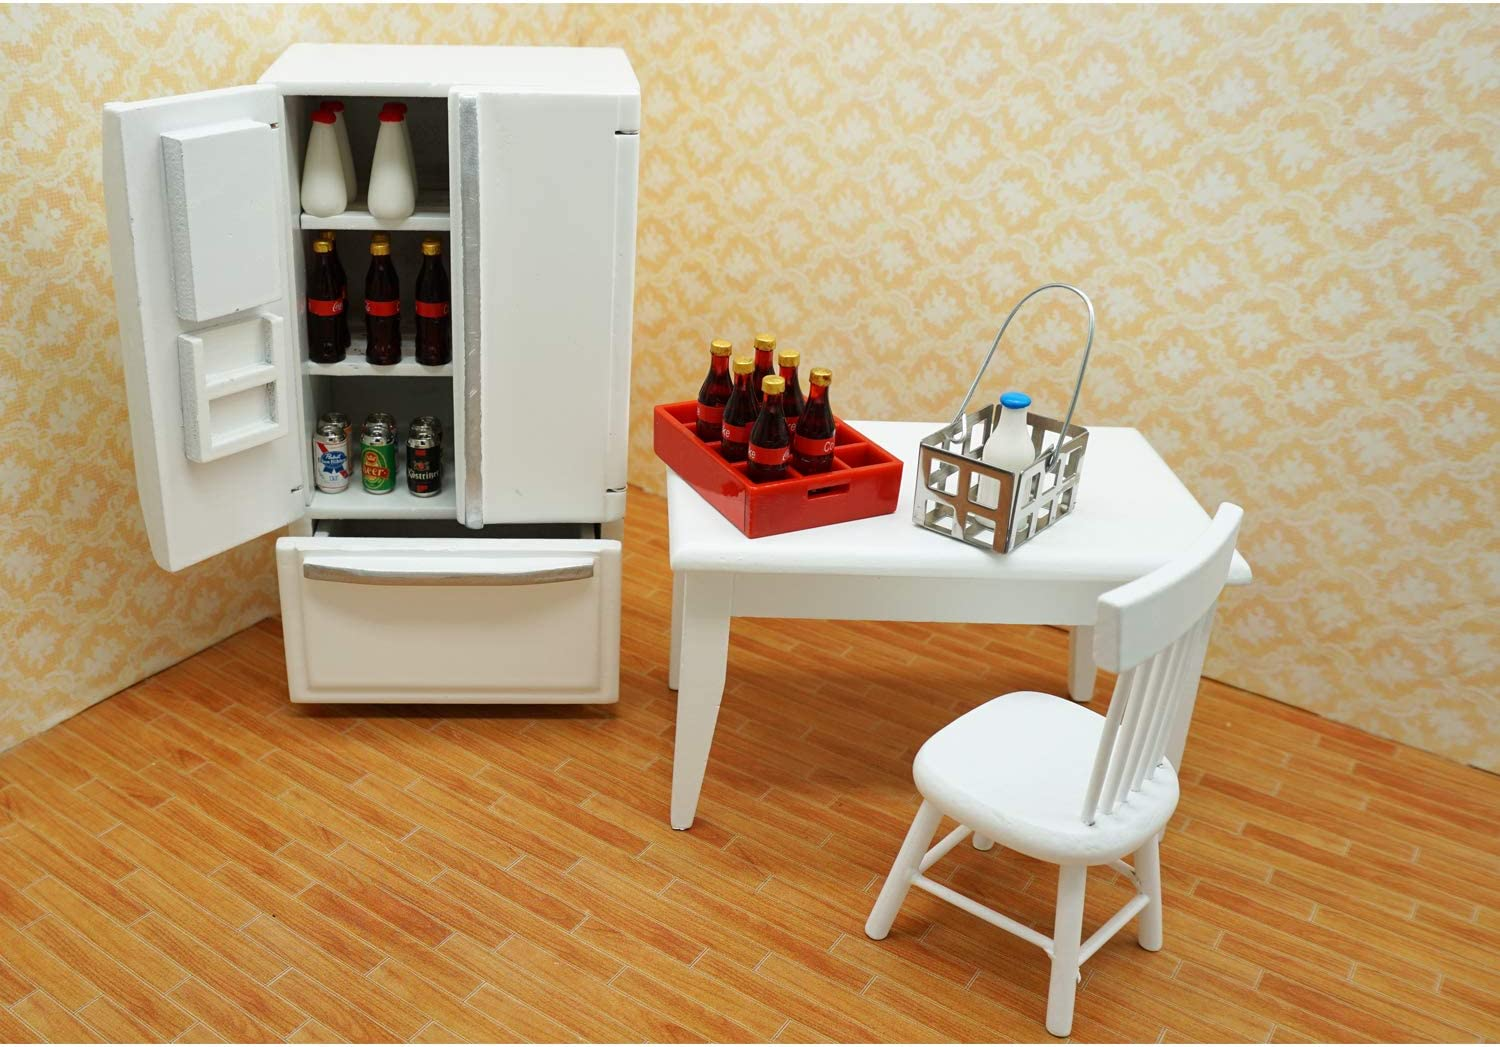 for Kitchen Room Furniture 26 Pieces White 1:12 Dollhouse Refrigerator Set